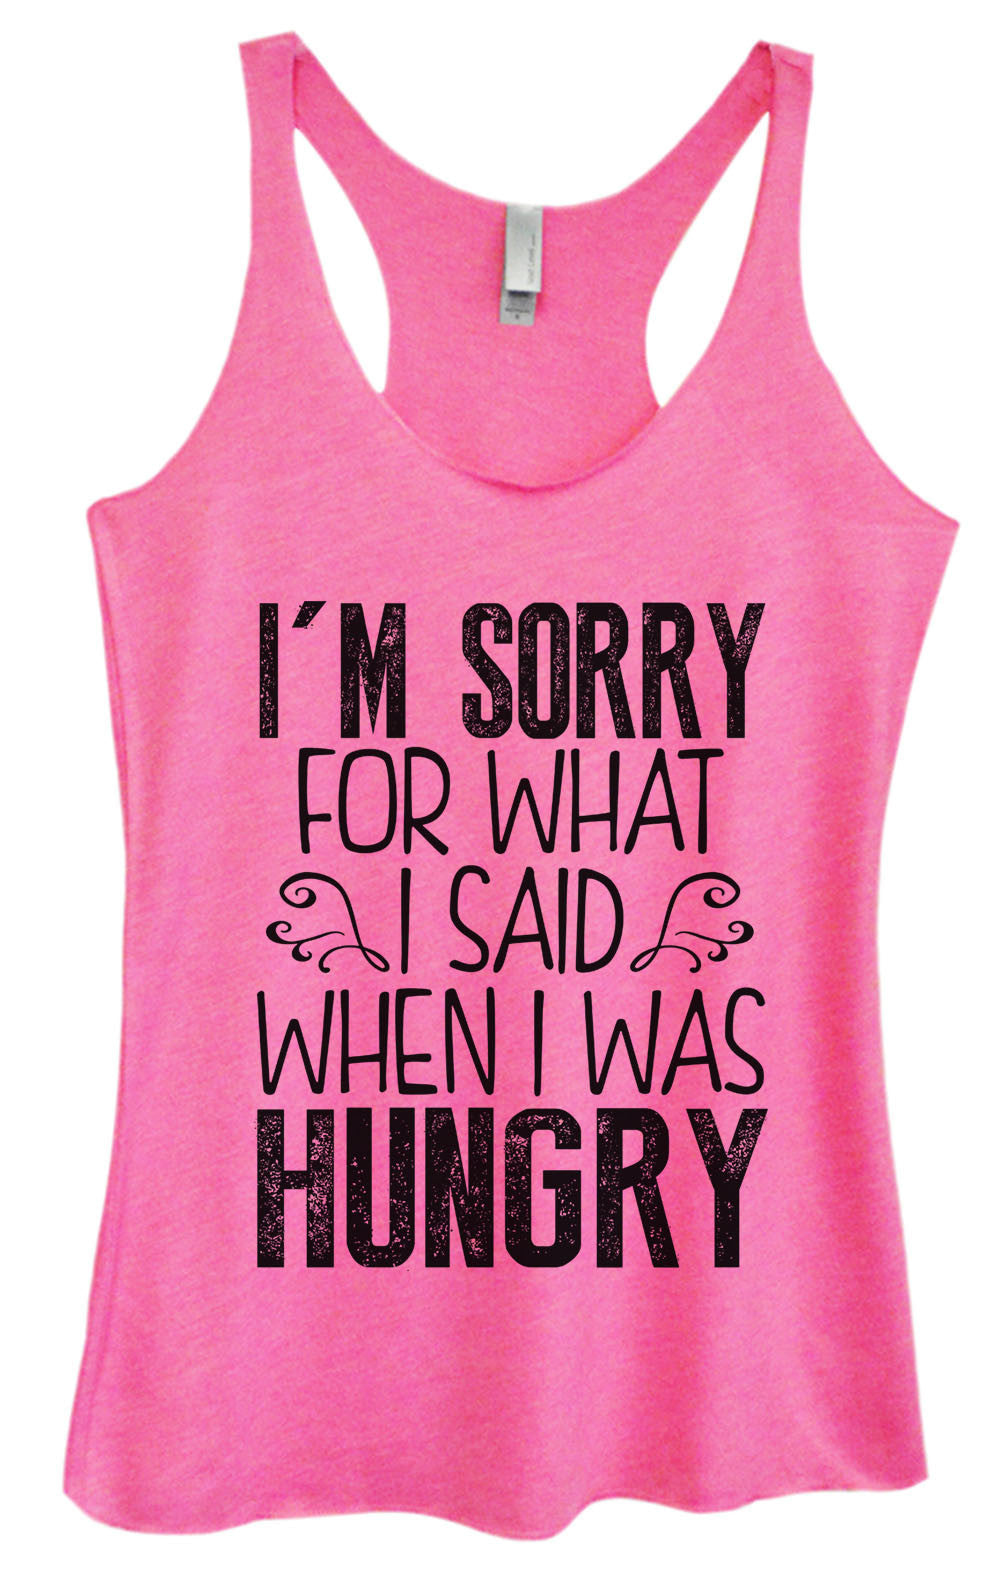 Womens Fashion Triblend Tank Top - I'm Sorry For What I Said When I Was Hungry - Tri-952 - Funny Shirts Tank Tops Burnouts and Triblends  - 4